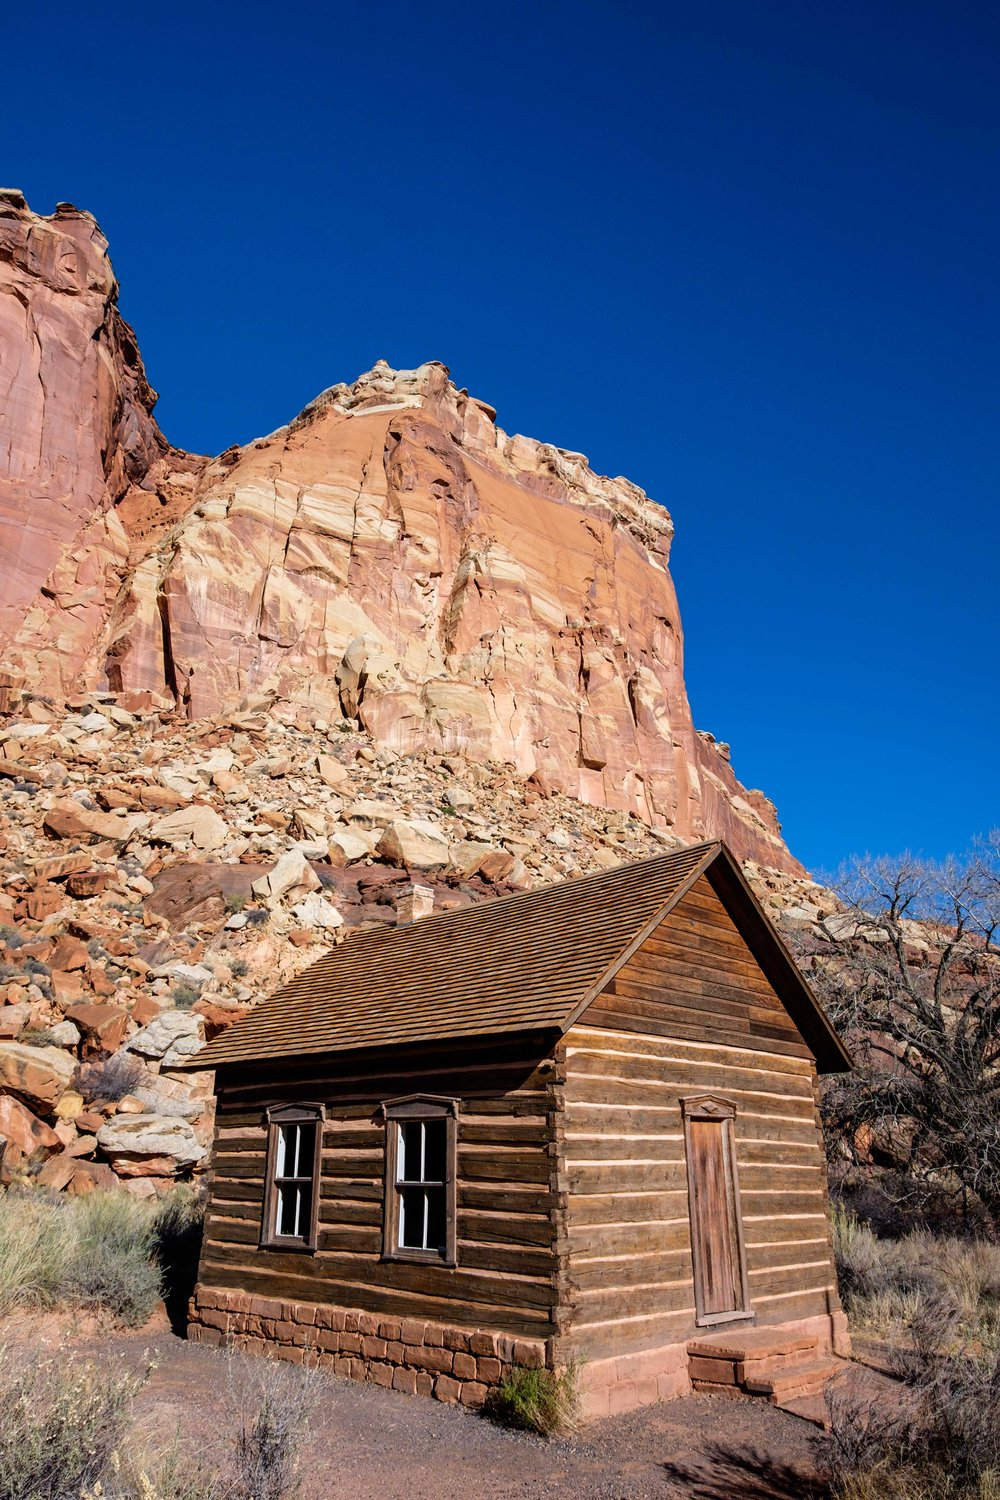 The famous Fruita schoolhouse.